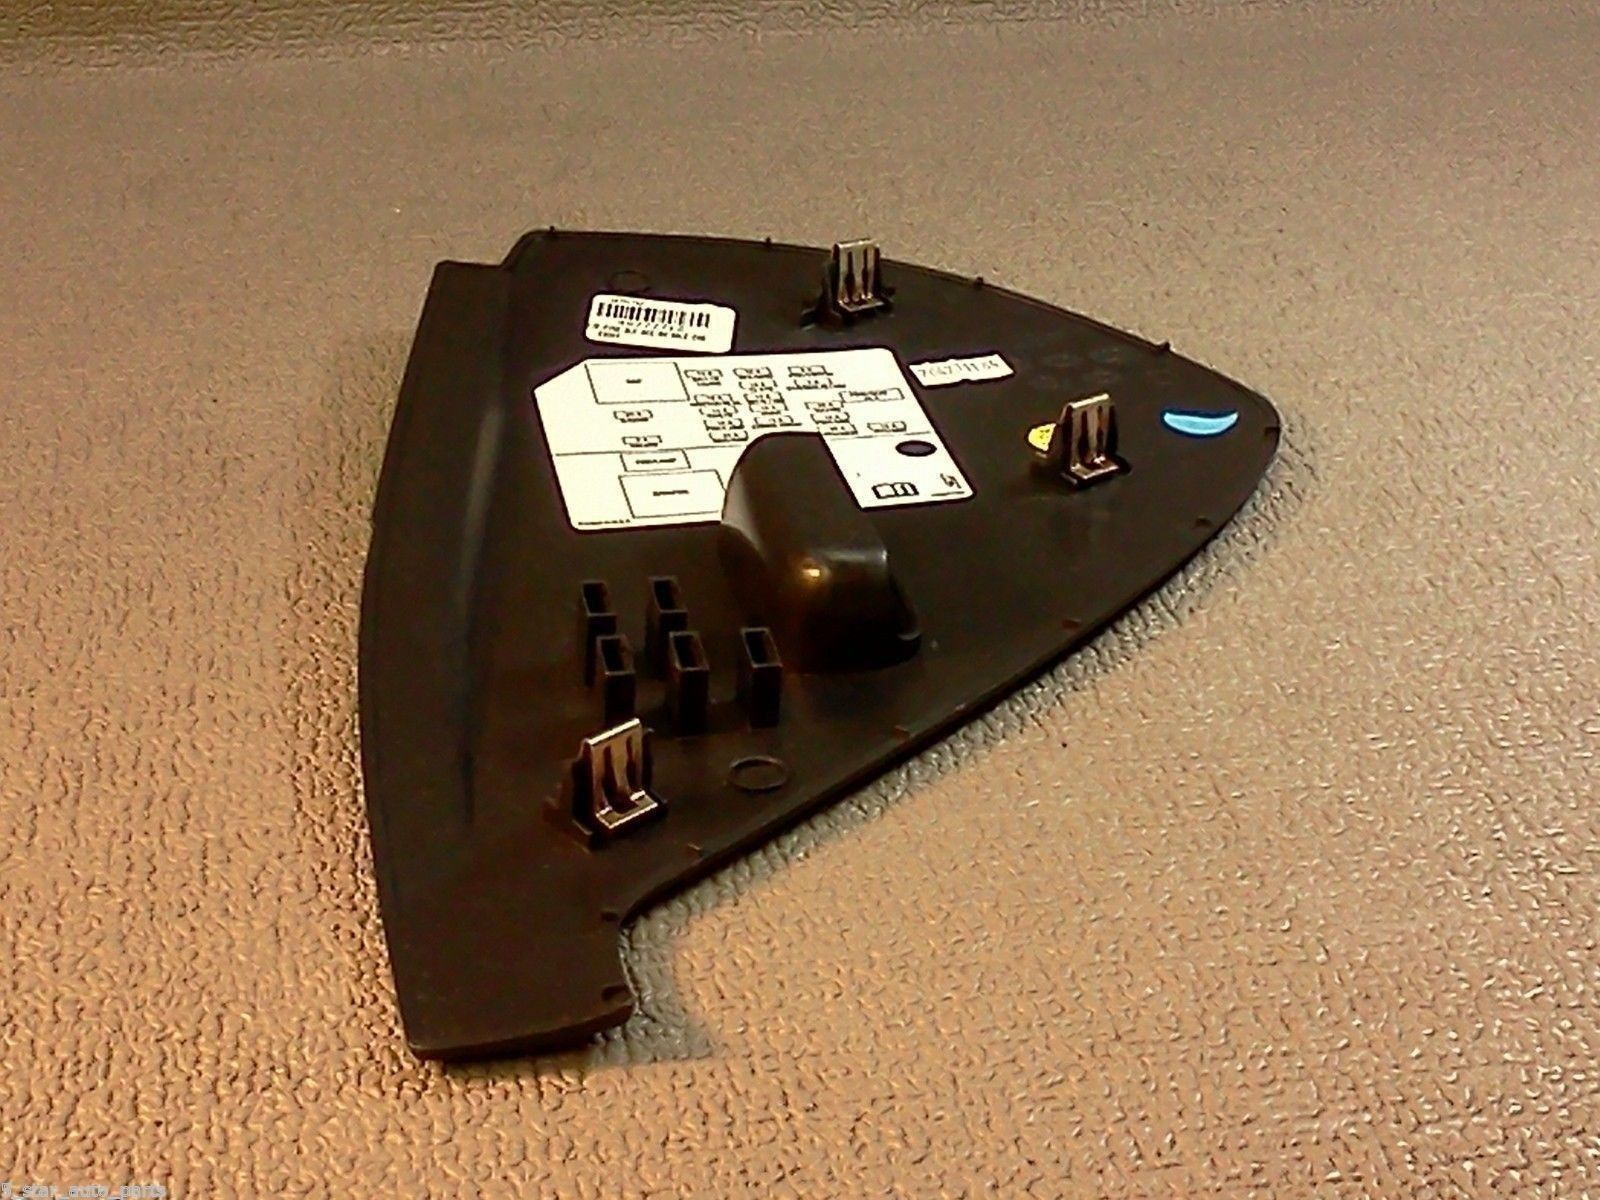 ... Buick Lucerne Fuse Box Dash Cover 2006 2007 2008 2009 2010 2011 Color  Black ...